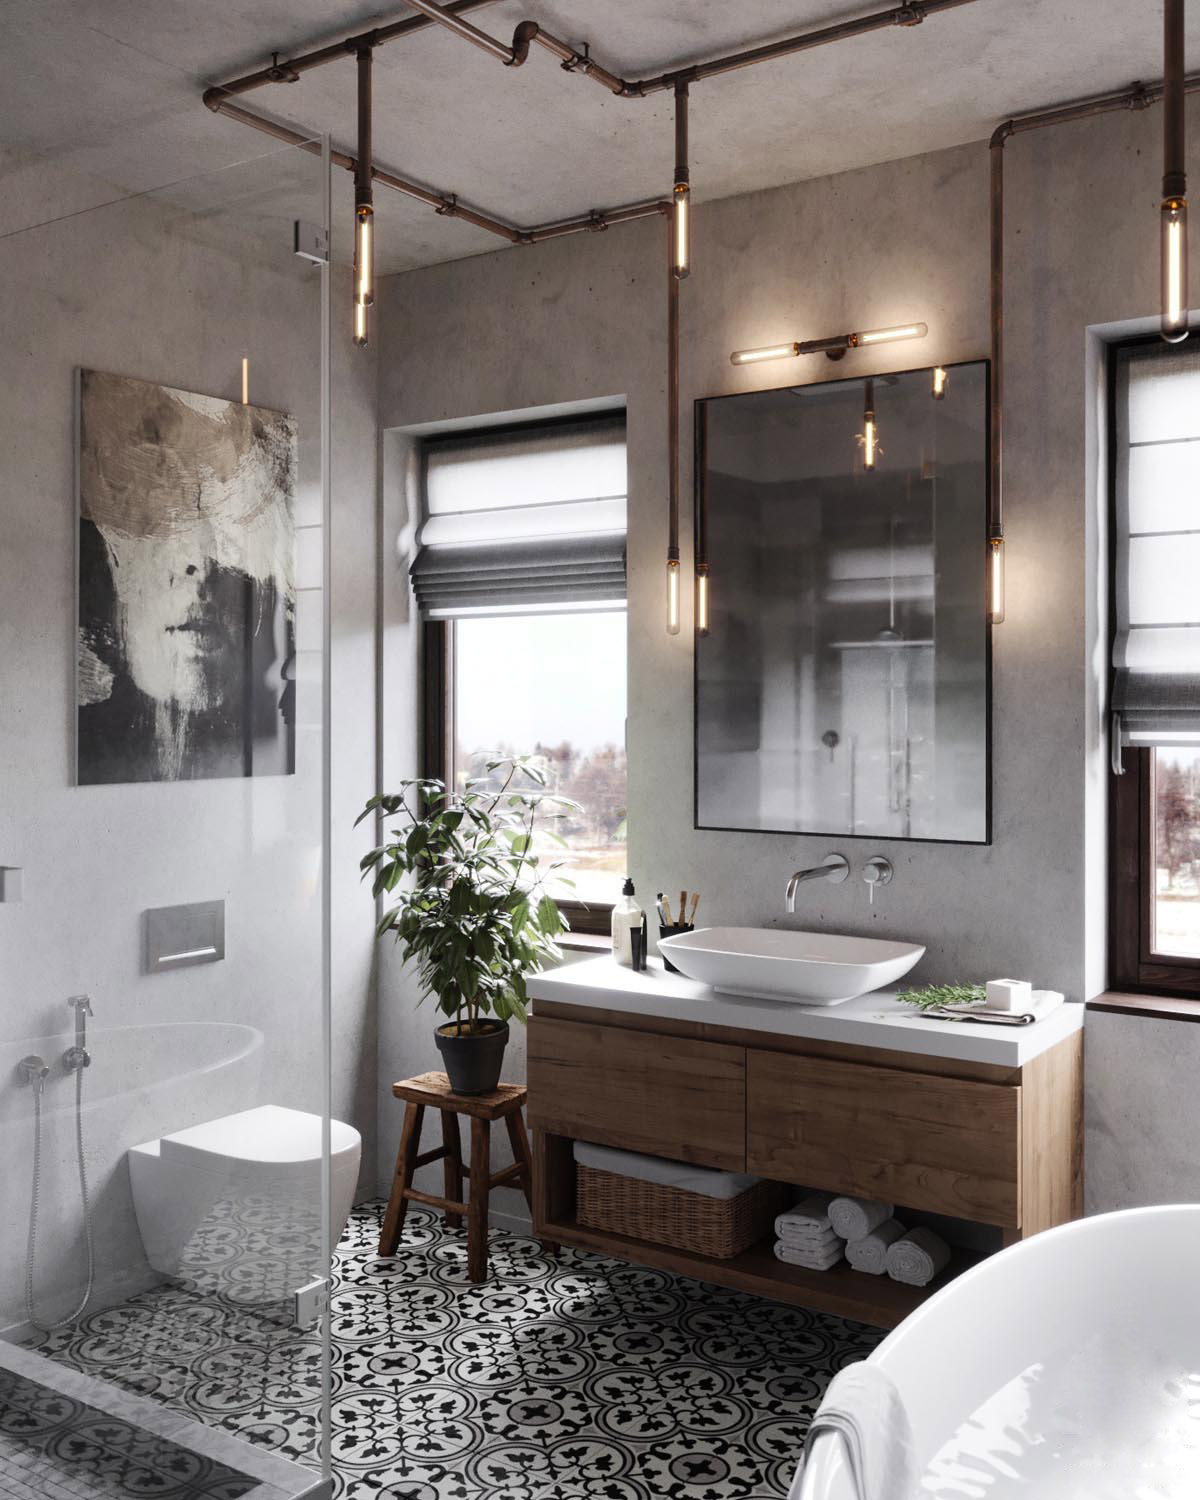 Industrial Vanity: 51 Industrial Style Bathrooms Plus Ideas & Accessories You